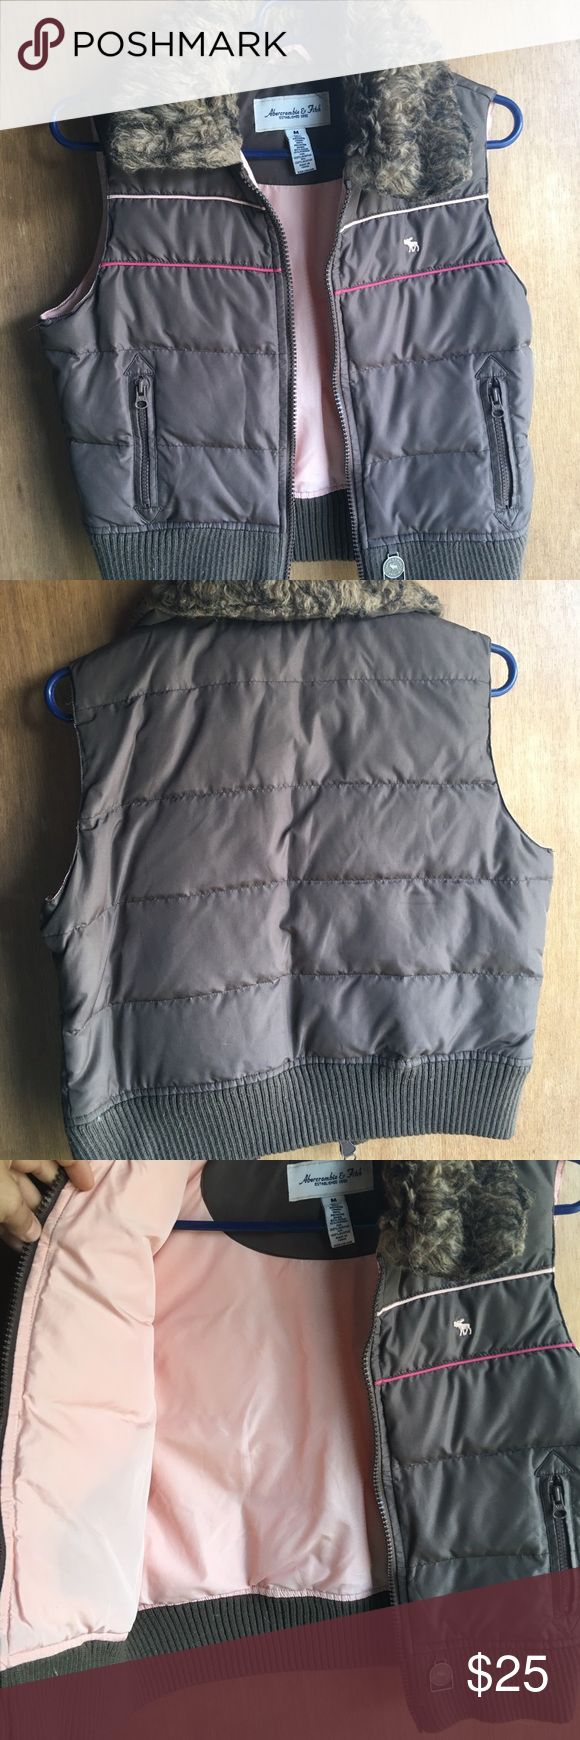 """A&F down best. Size M (runs small though). In great shape. Abercrombie and Fitch down vest. Size Medium but fits more like a small. Brown exterior with a peachy pink interior. Hot pink and pale pink piping stripes on breast of exterior. Side zippered pockets. Length from top of shoulder to bottom of vest is 19"""". Abercrombie & Fitch Jackets & Coats Vests"""